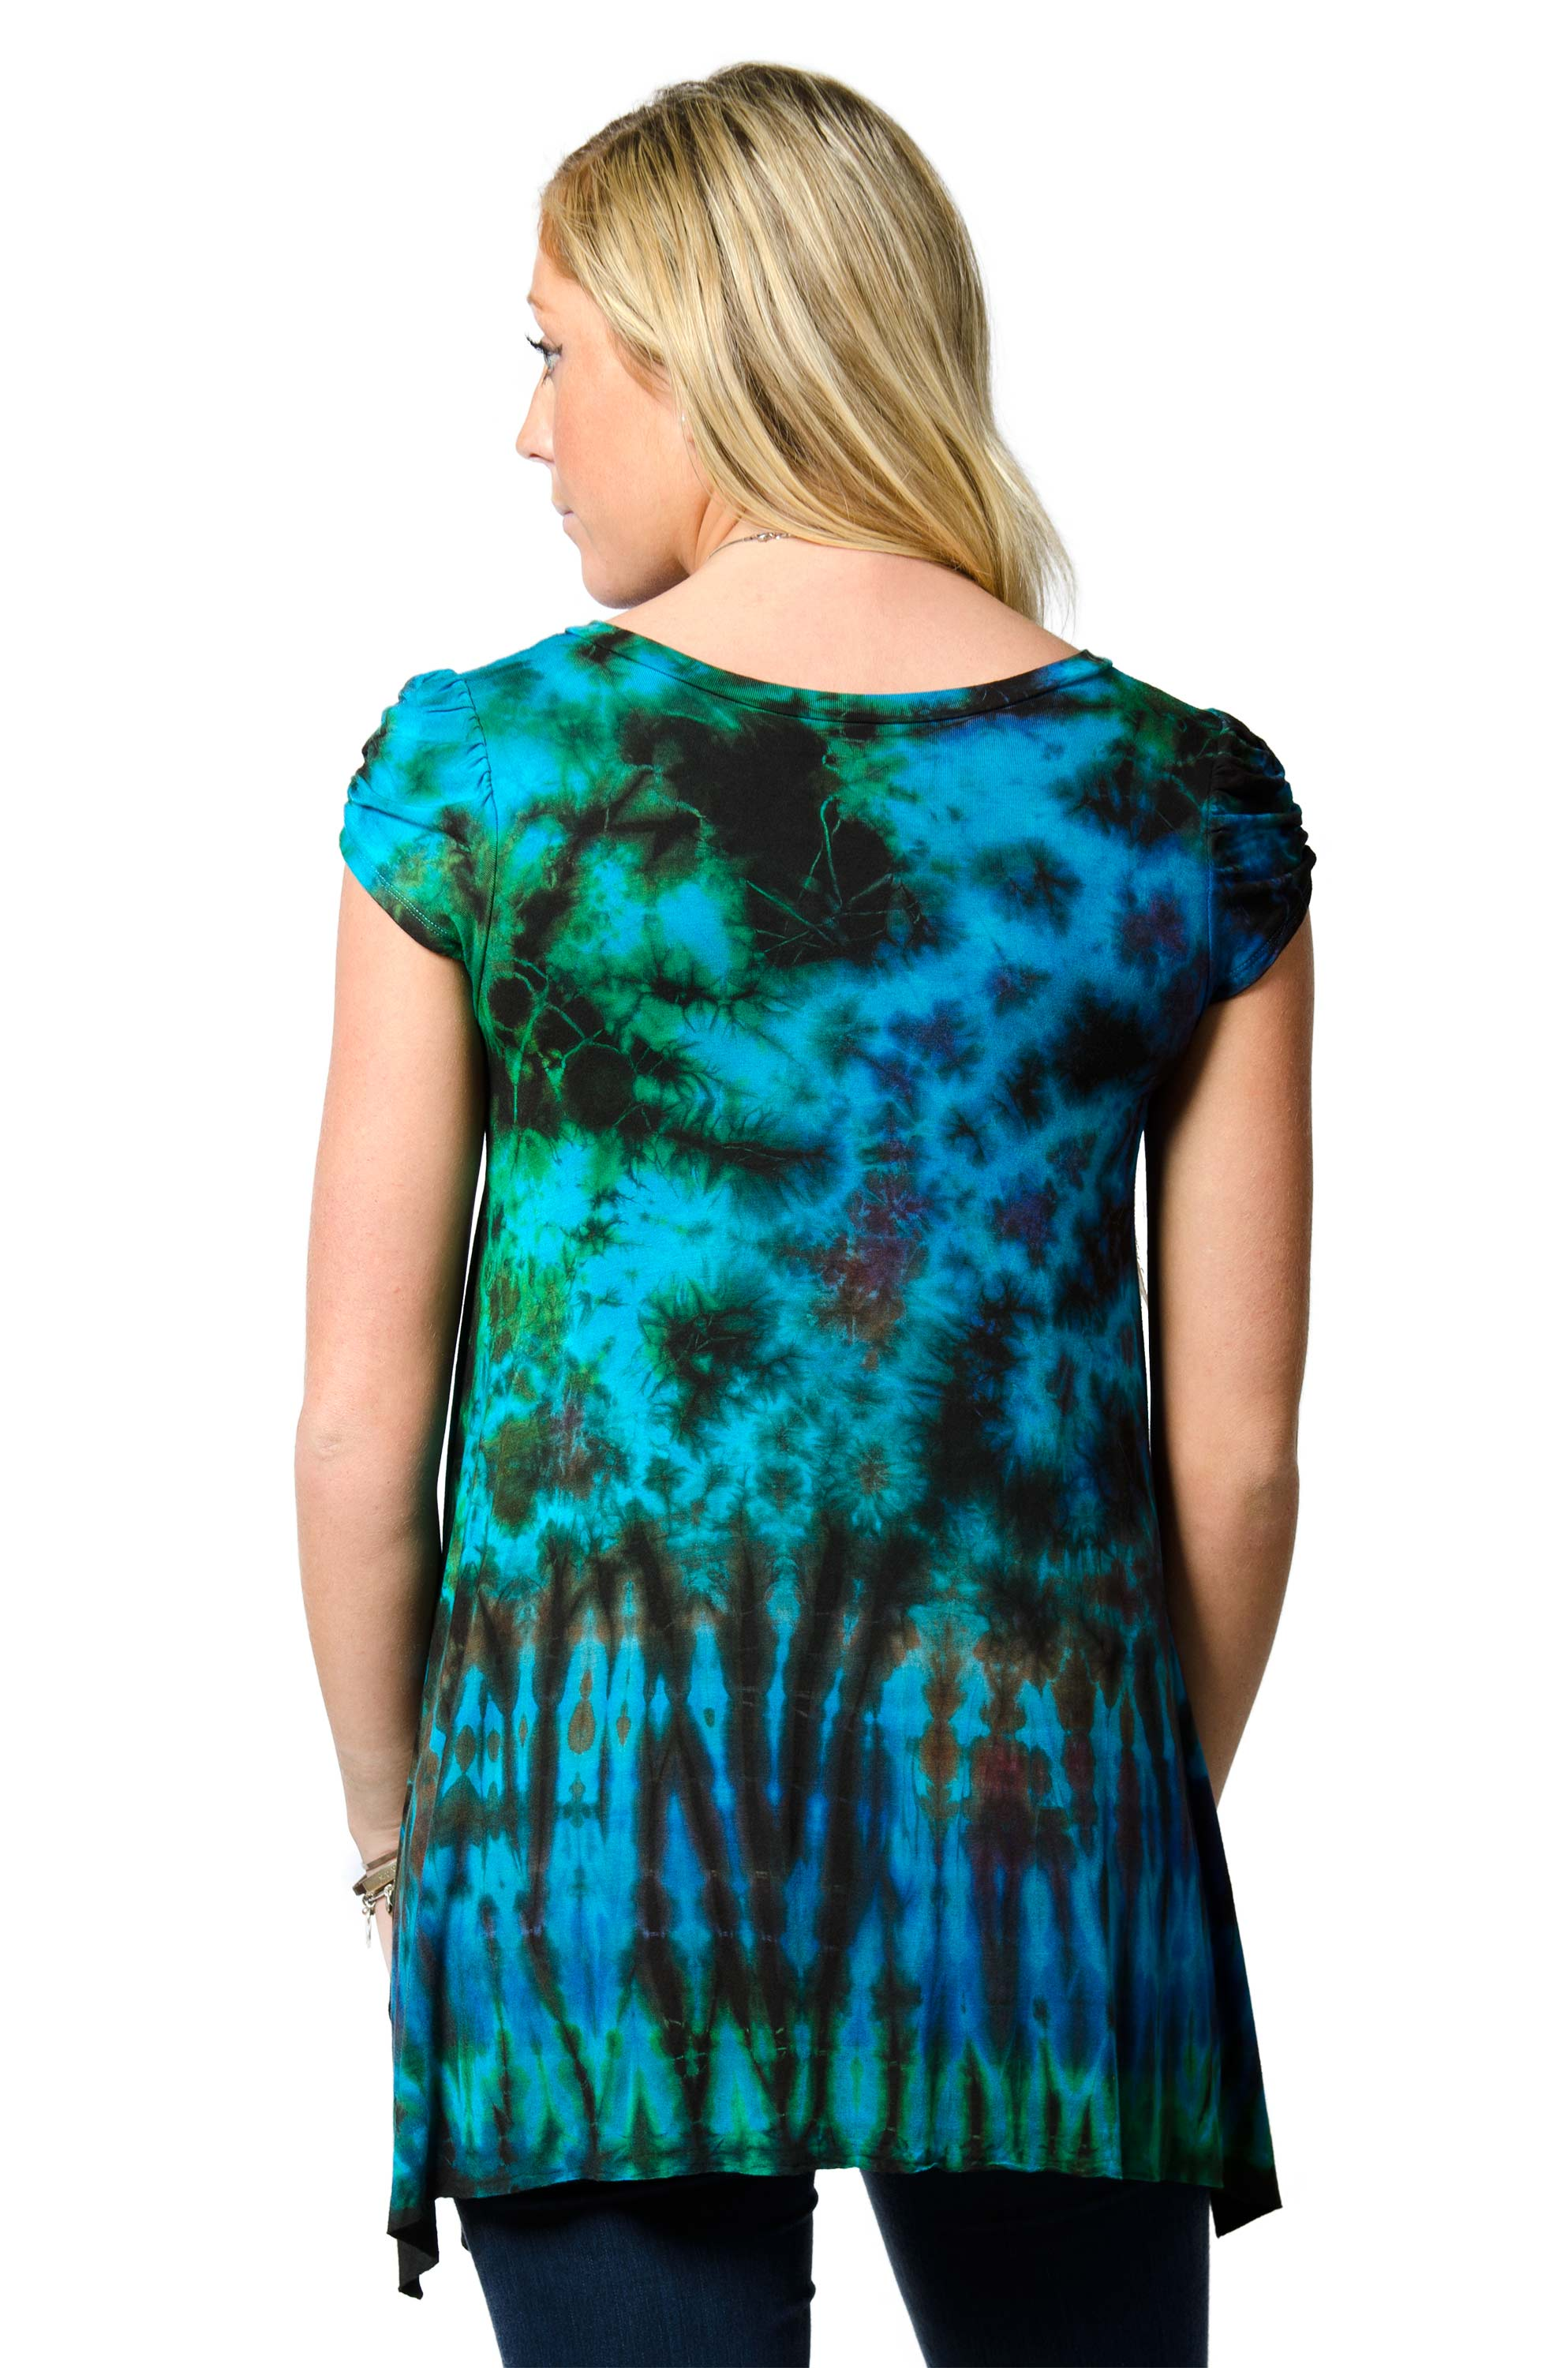 V-neck Blouse Hand Painted Tie Dye - Blue Multi